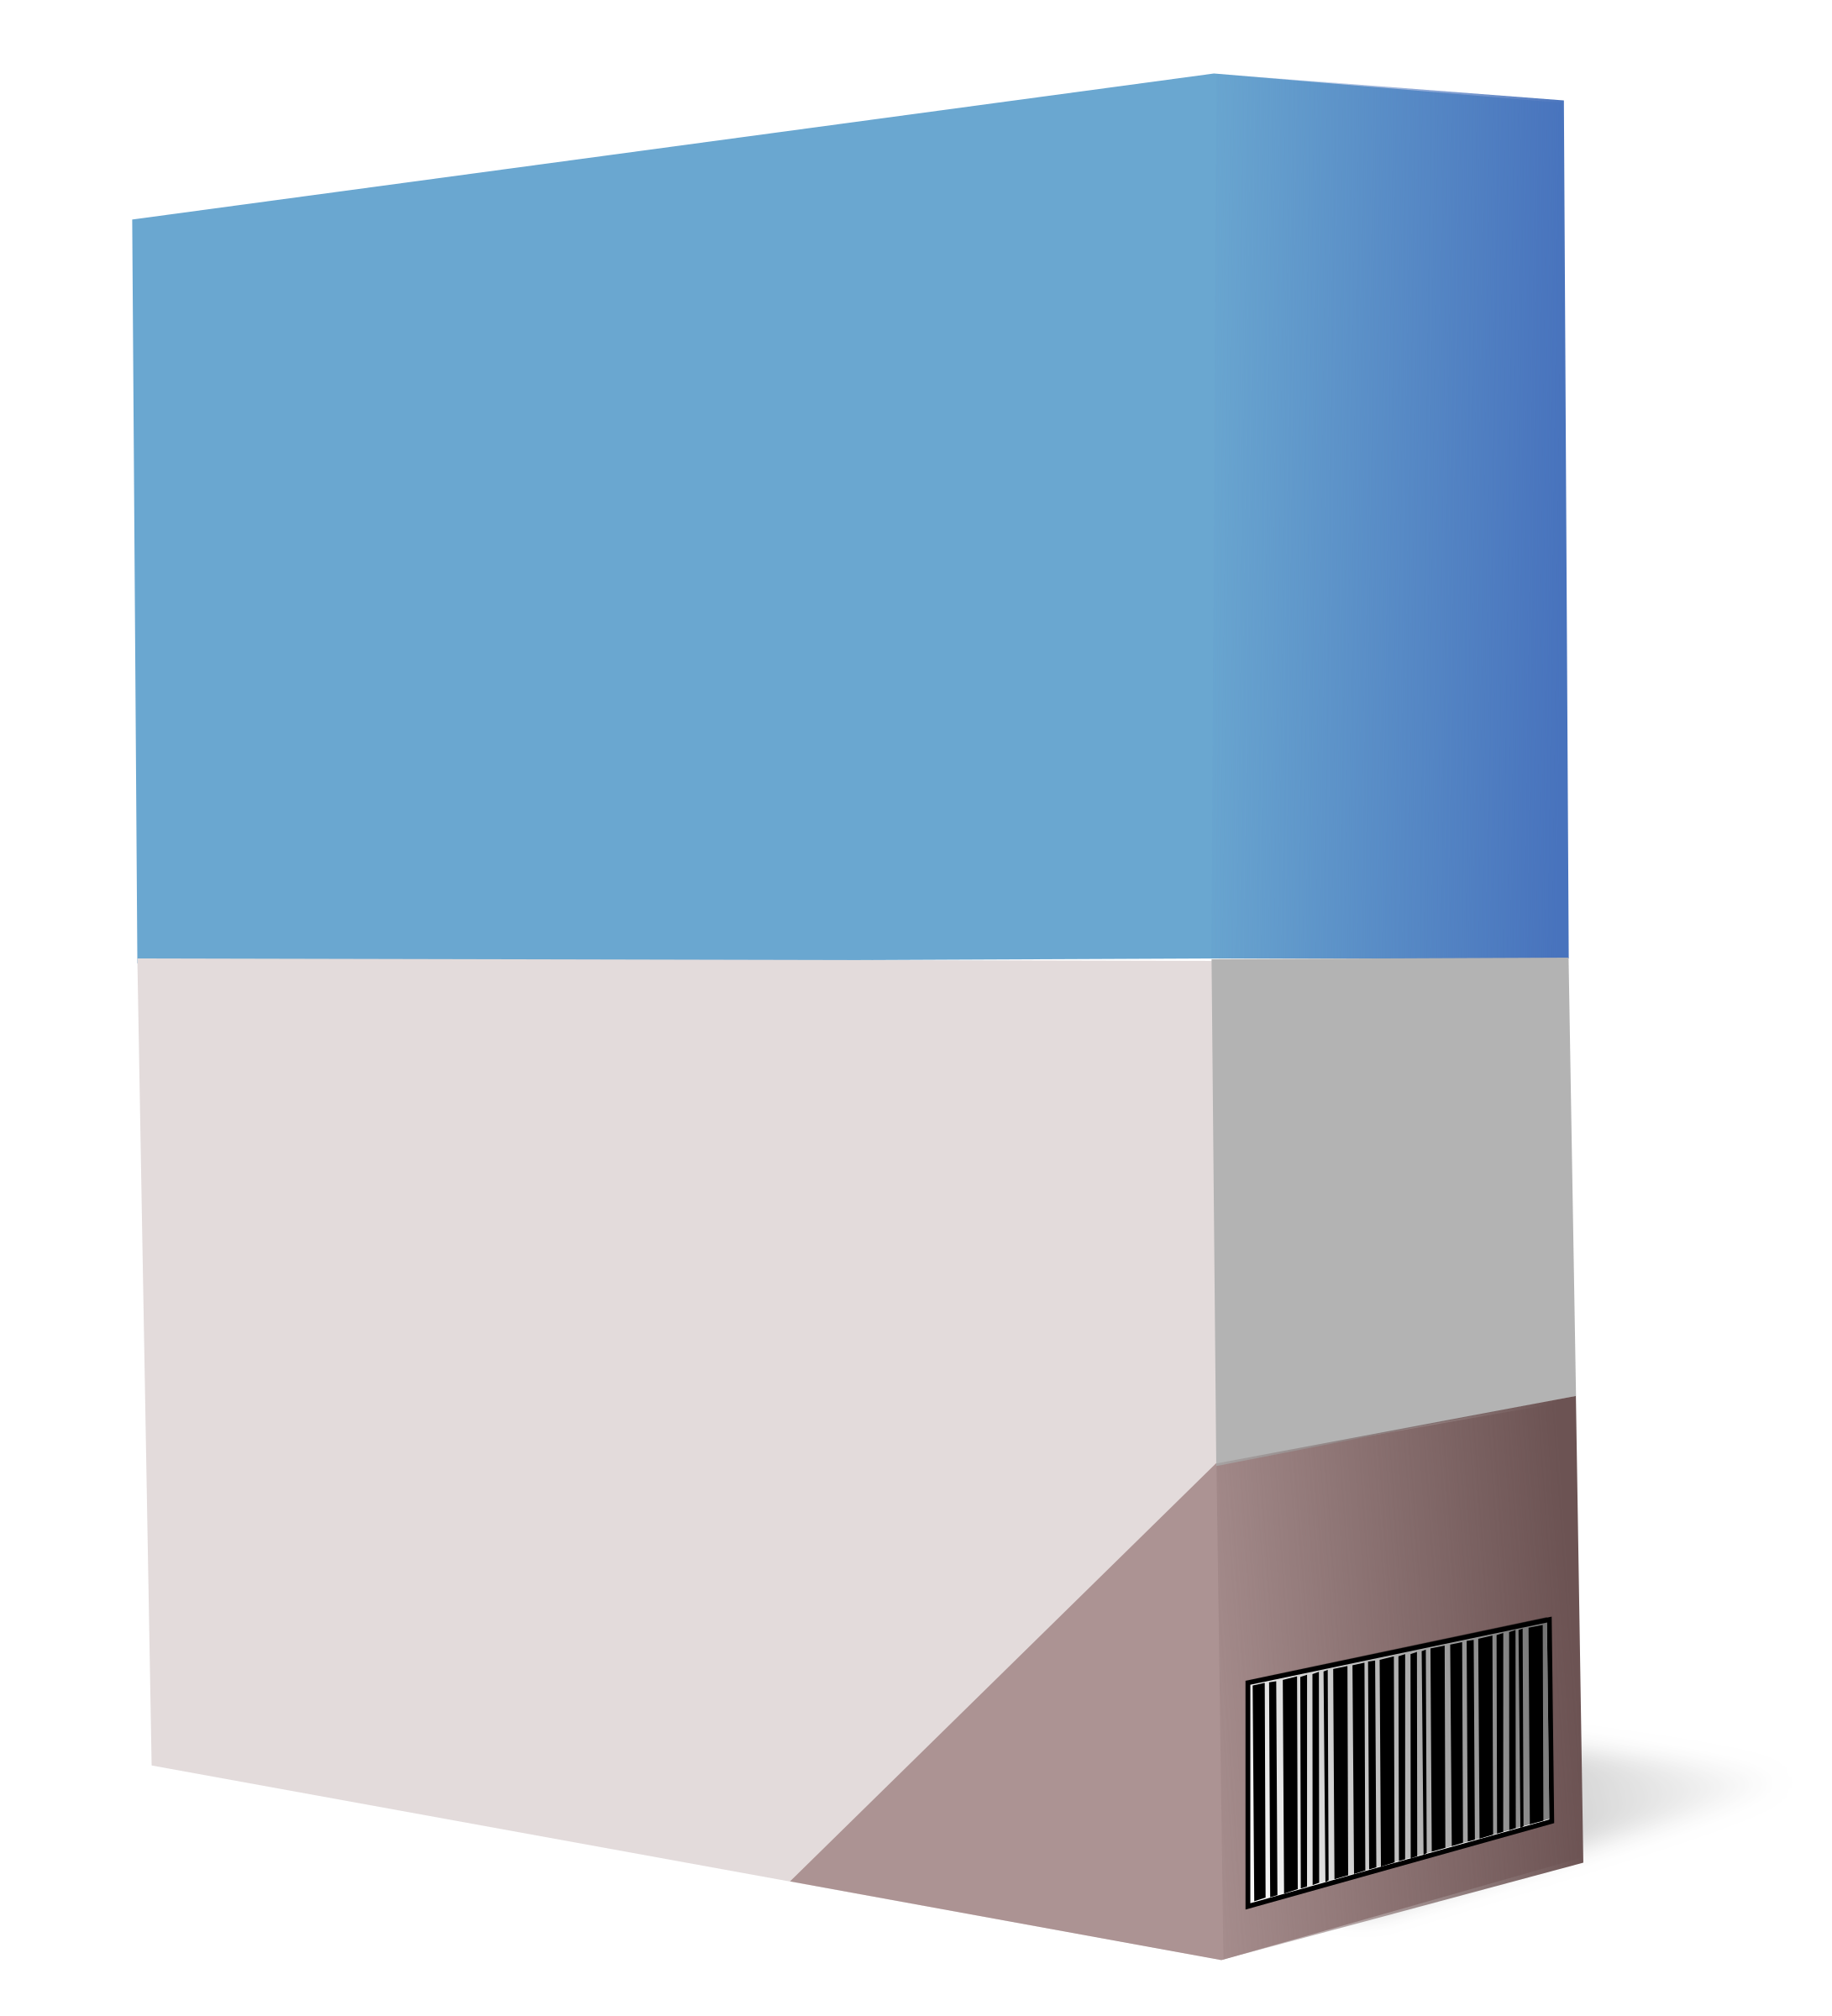 Clipart Software Box 1